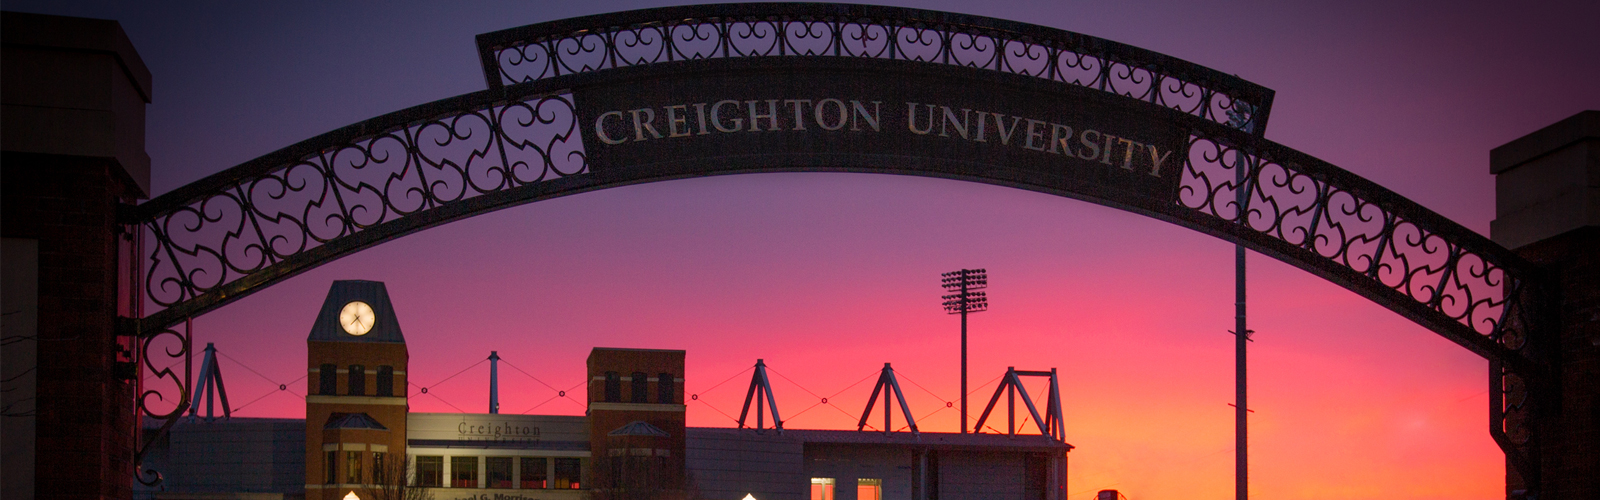 Apply to Creighton University